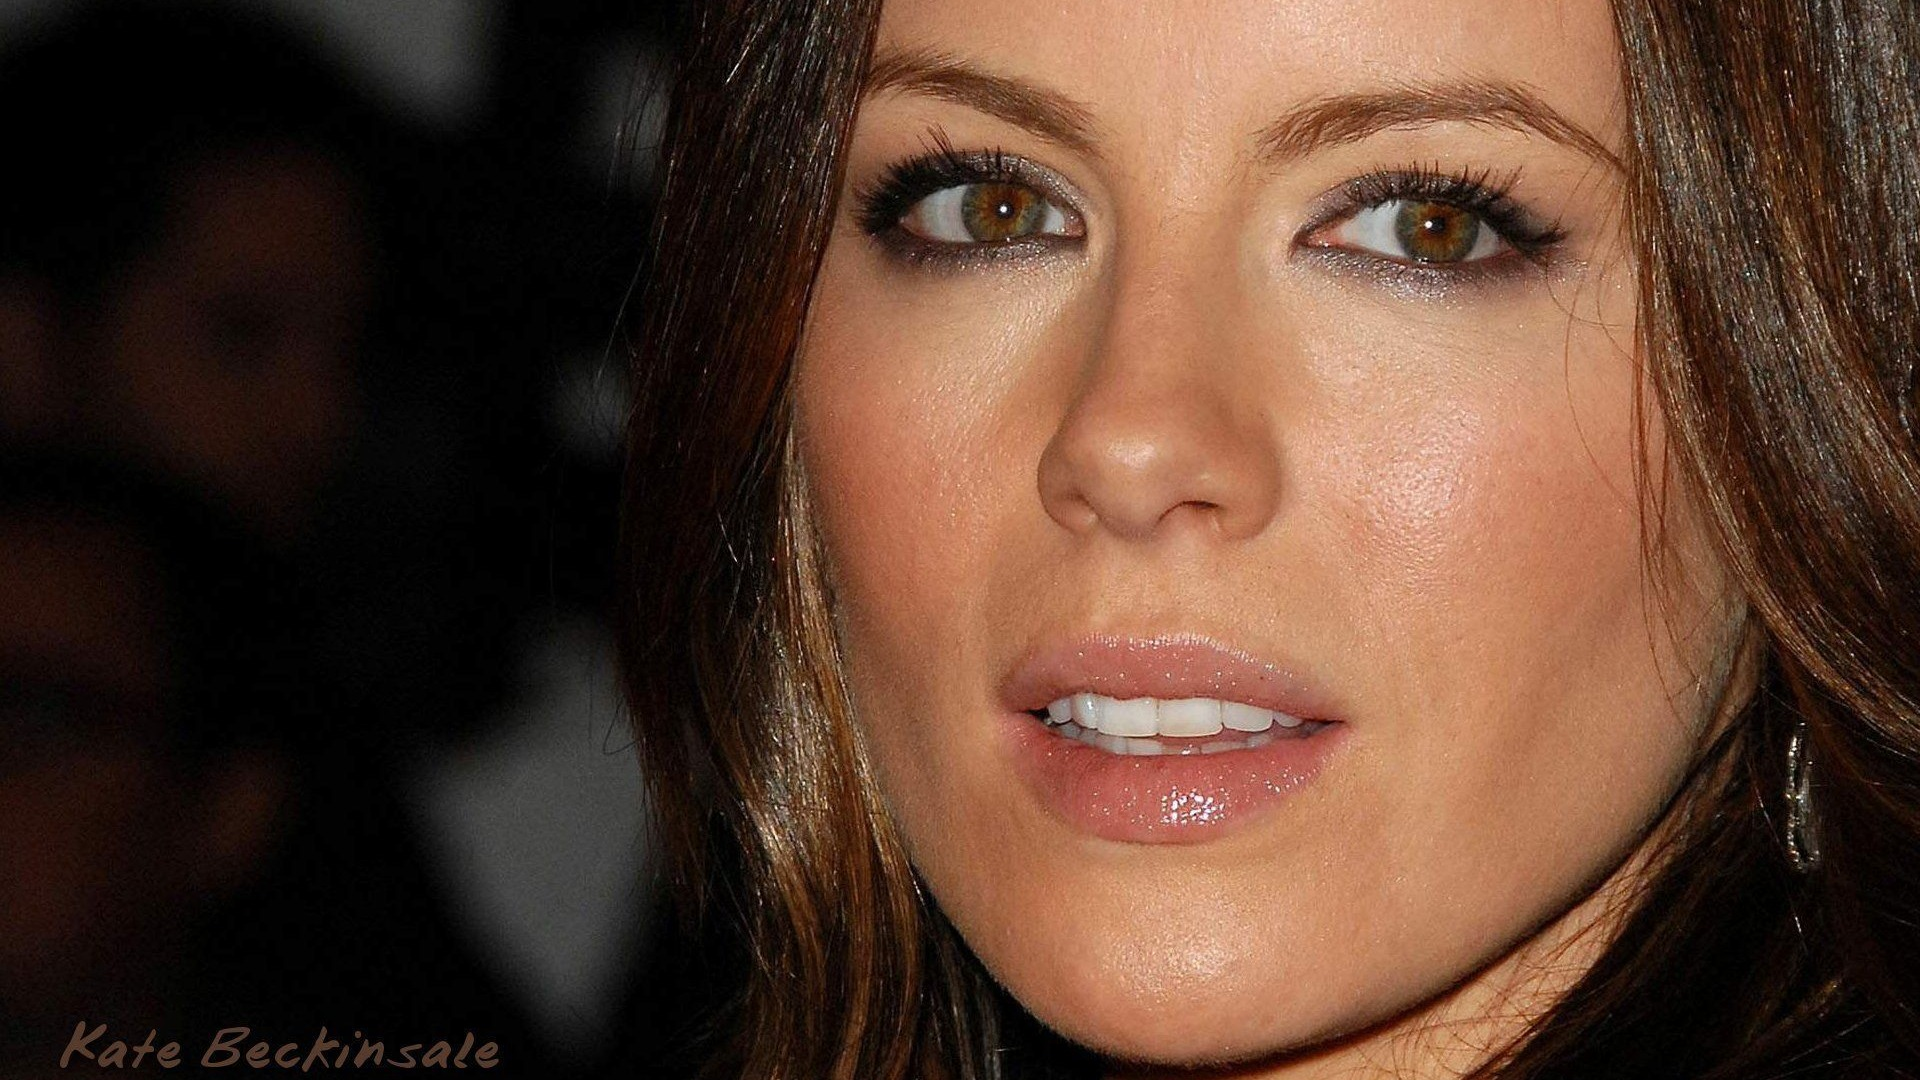 Kate Beckinsale beautiful wallpaper #12 - 1920x1080 Wallpaper Download ... Kate Beckinsale